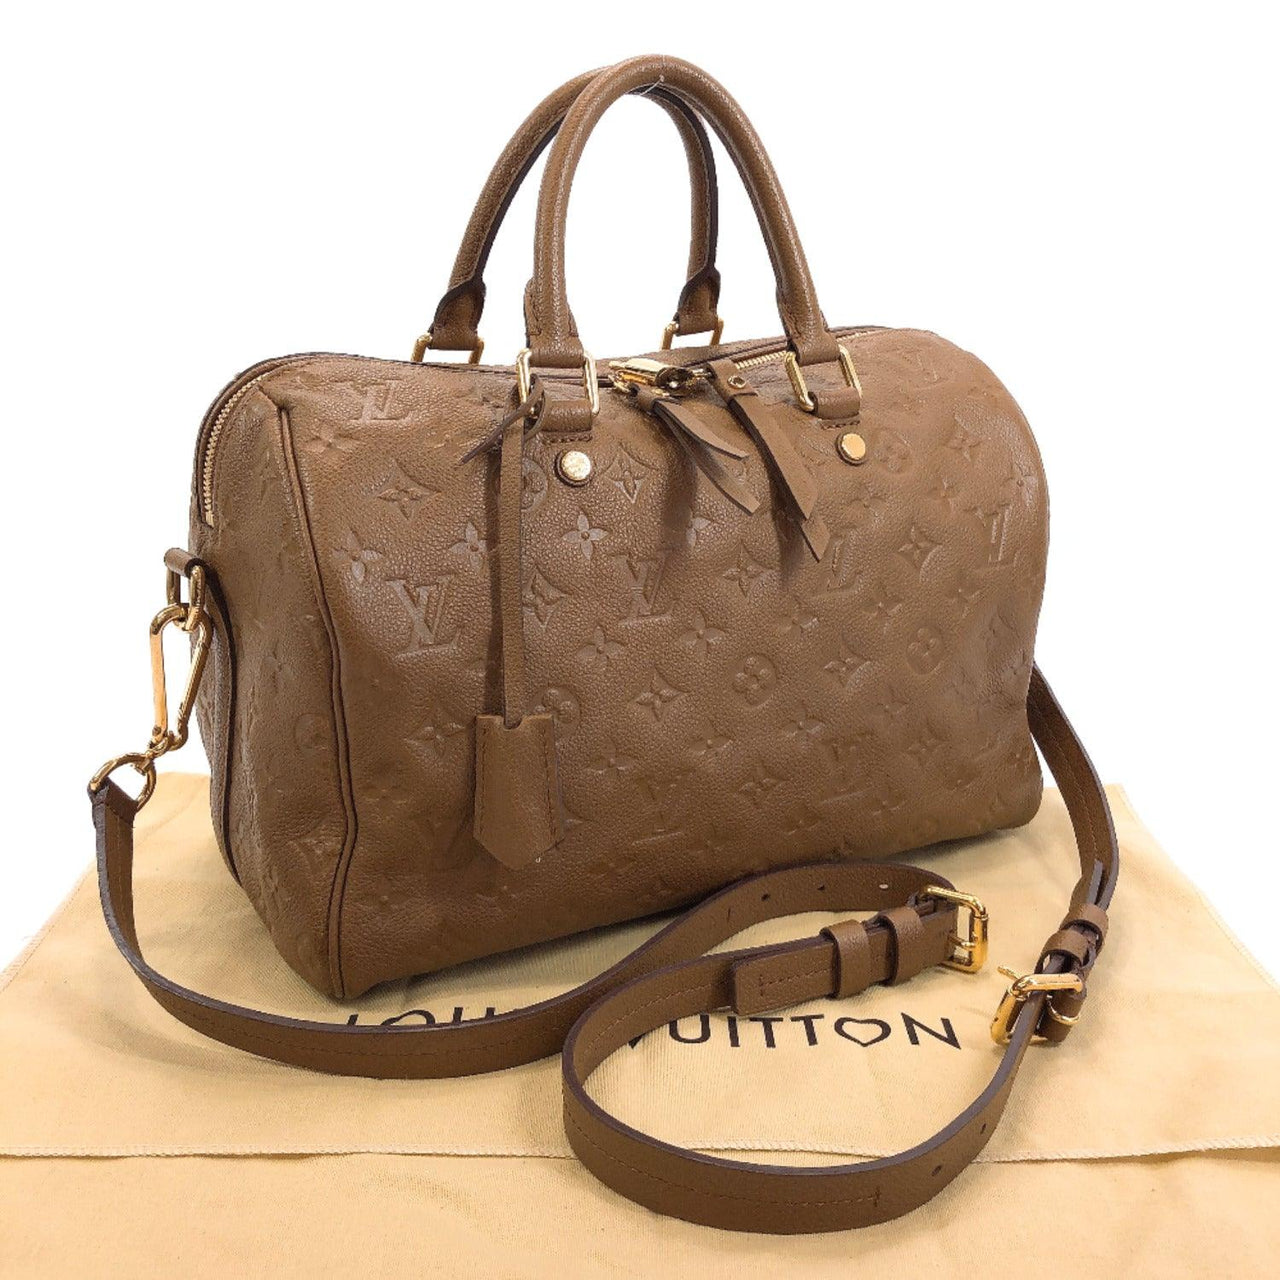 LOUIS VUITTON Handbag M40900 Speedy 30 Bandriere Monogram unplant Brown Women Used